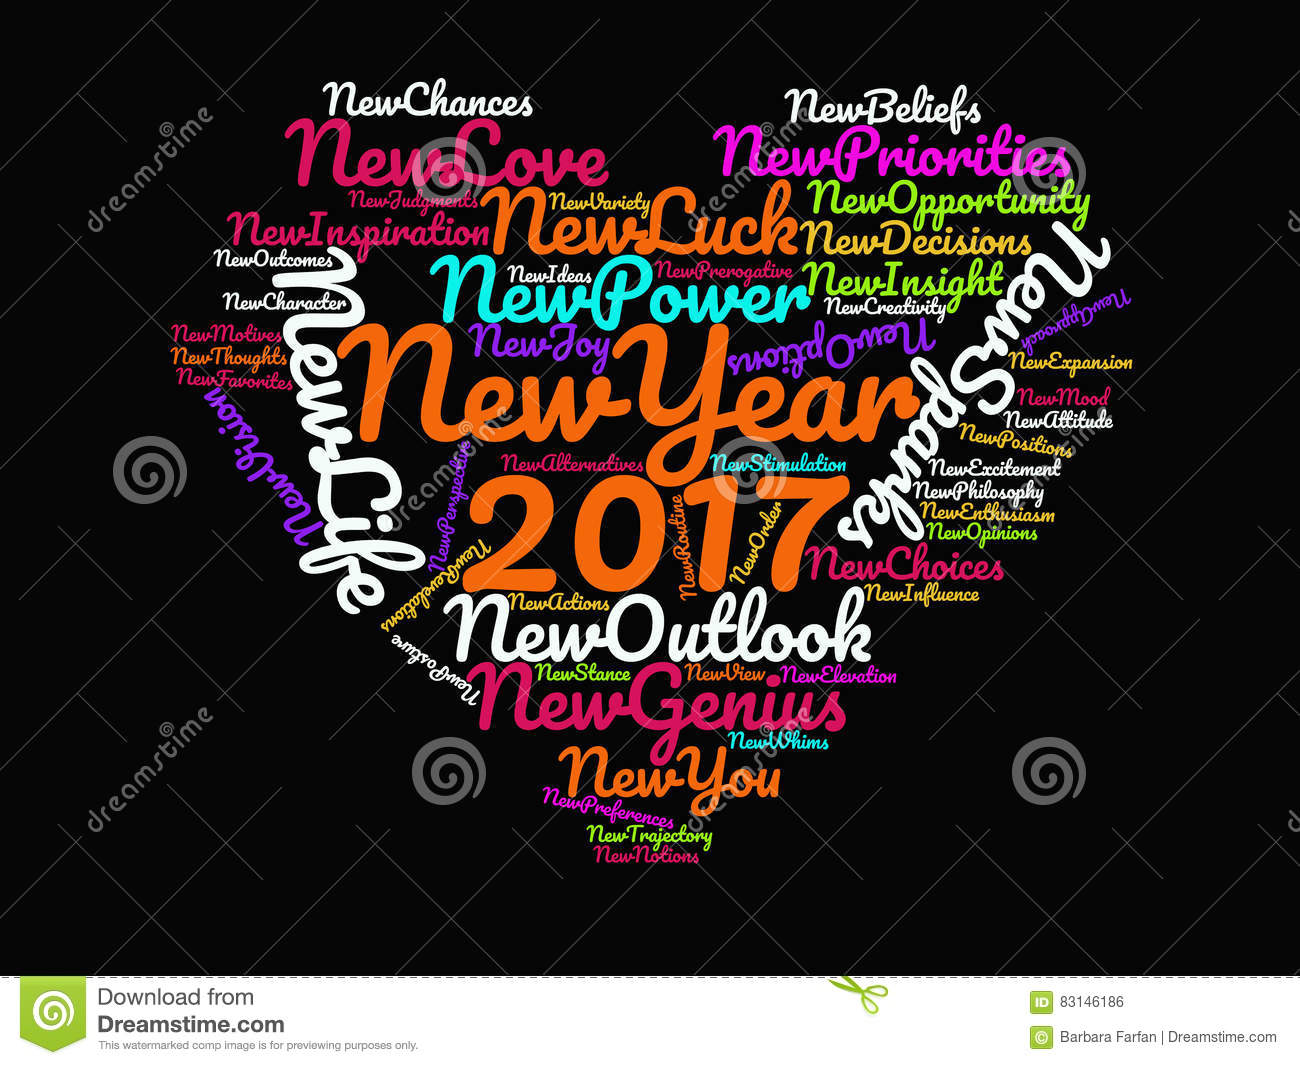 Happy New Year 2017 Inspirational Quotes and Motivational Sayings on Black Background Multicolor Heart Graphic Artwork Poster